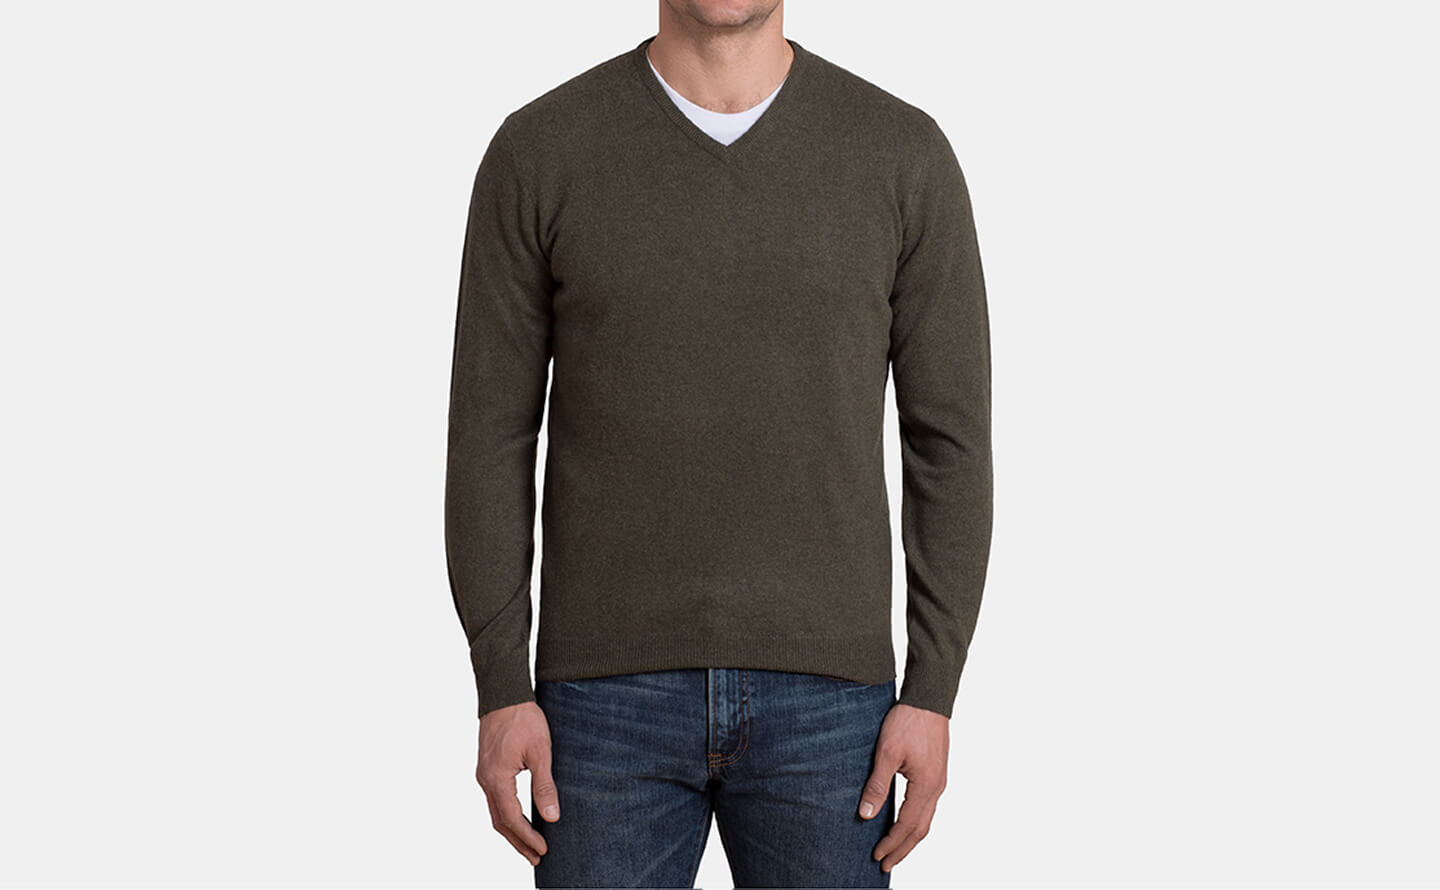 Pine Cashmere V-Neck Sweater by Proper Cloth